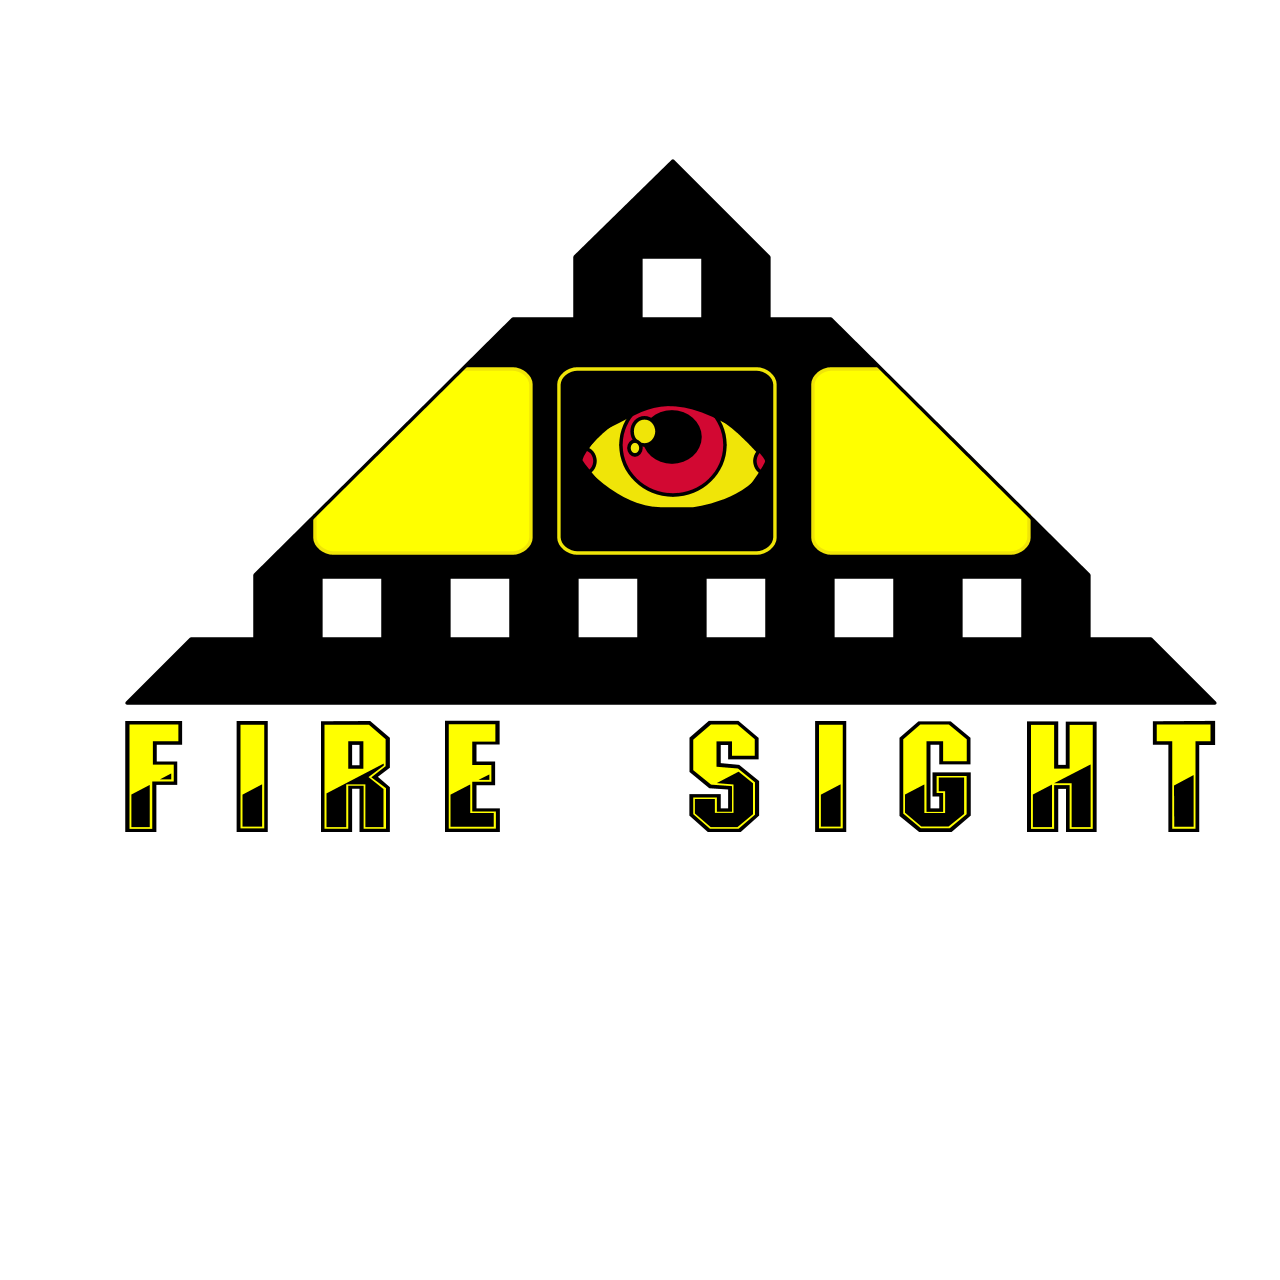 Firesight Logo - Design M v2 by Ultimaodin